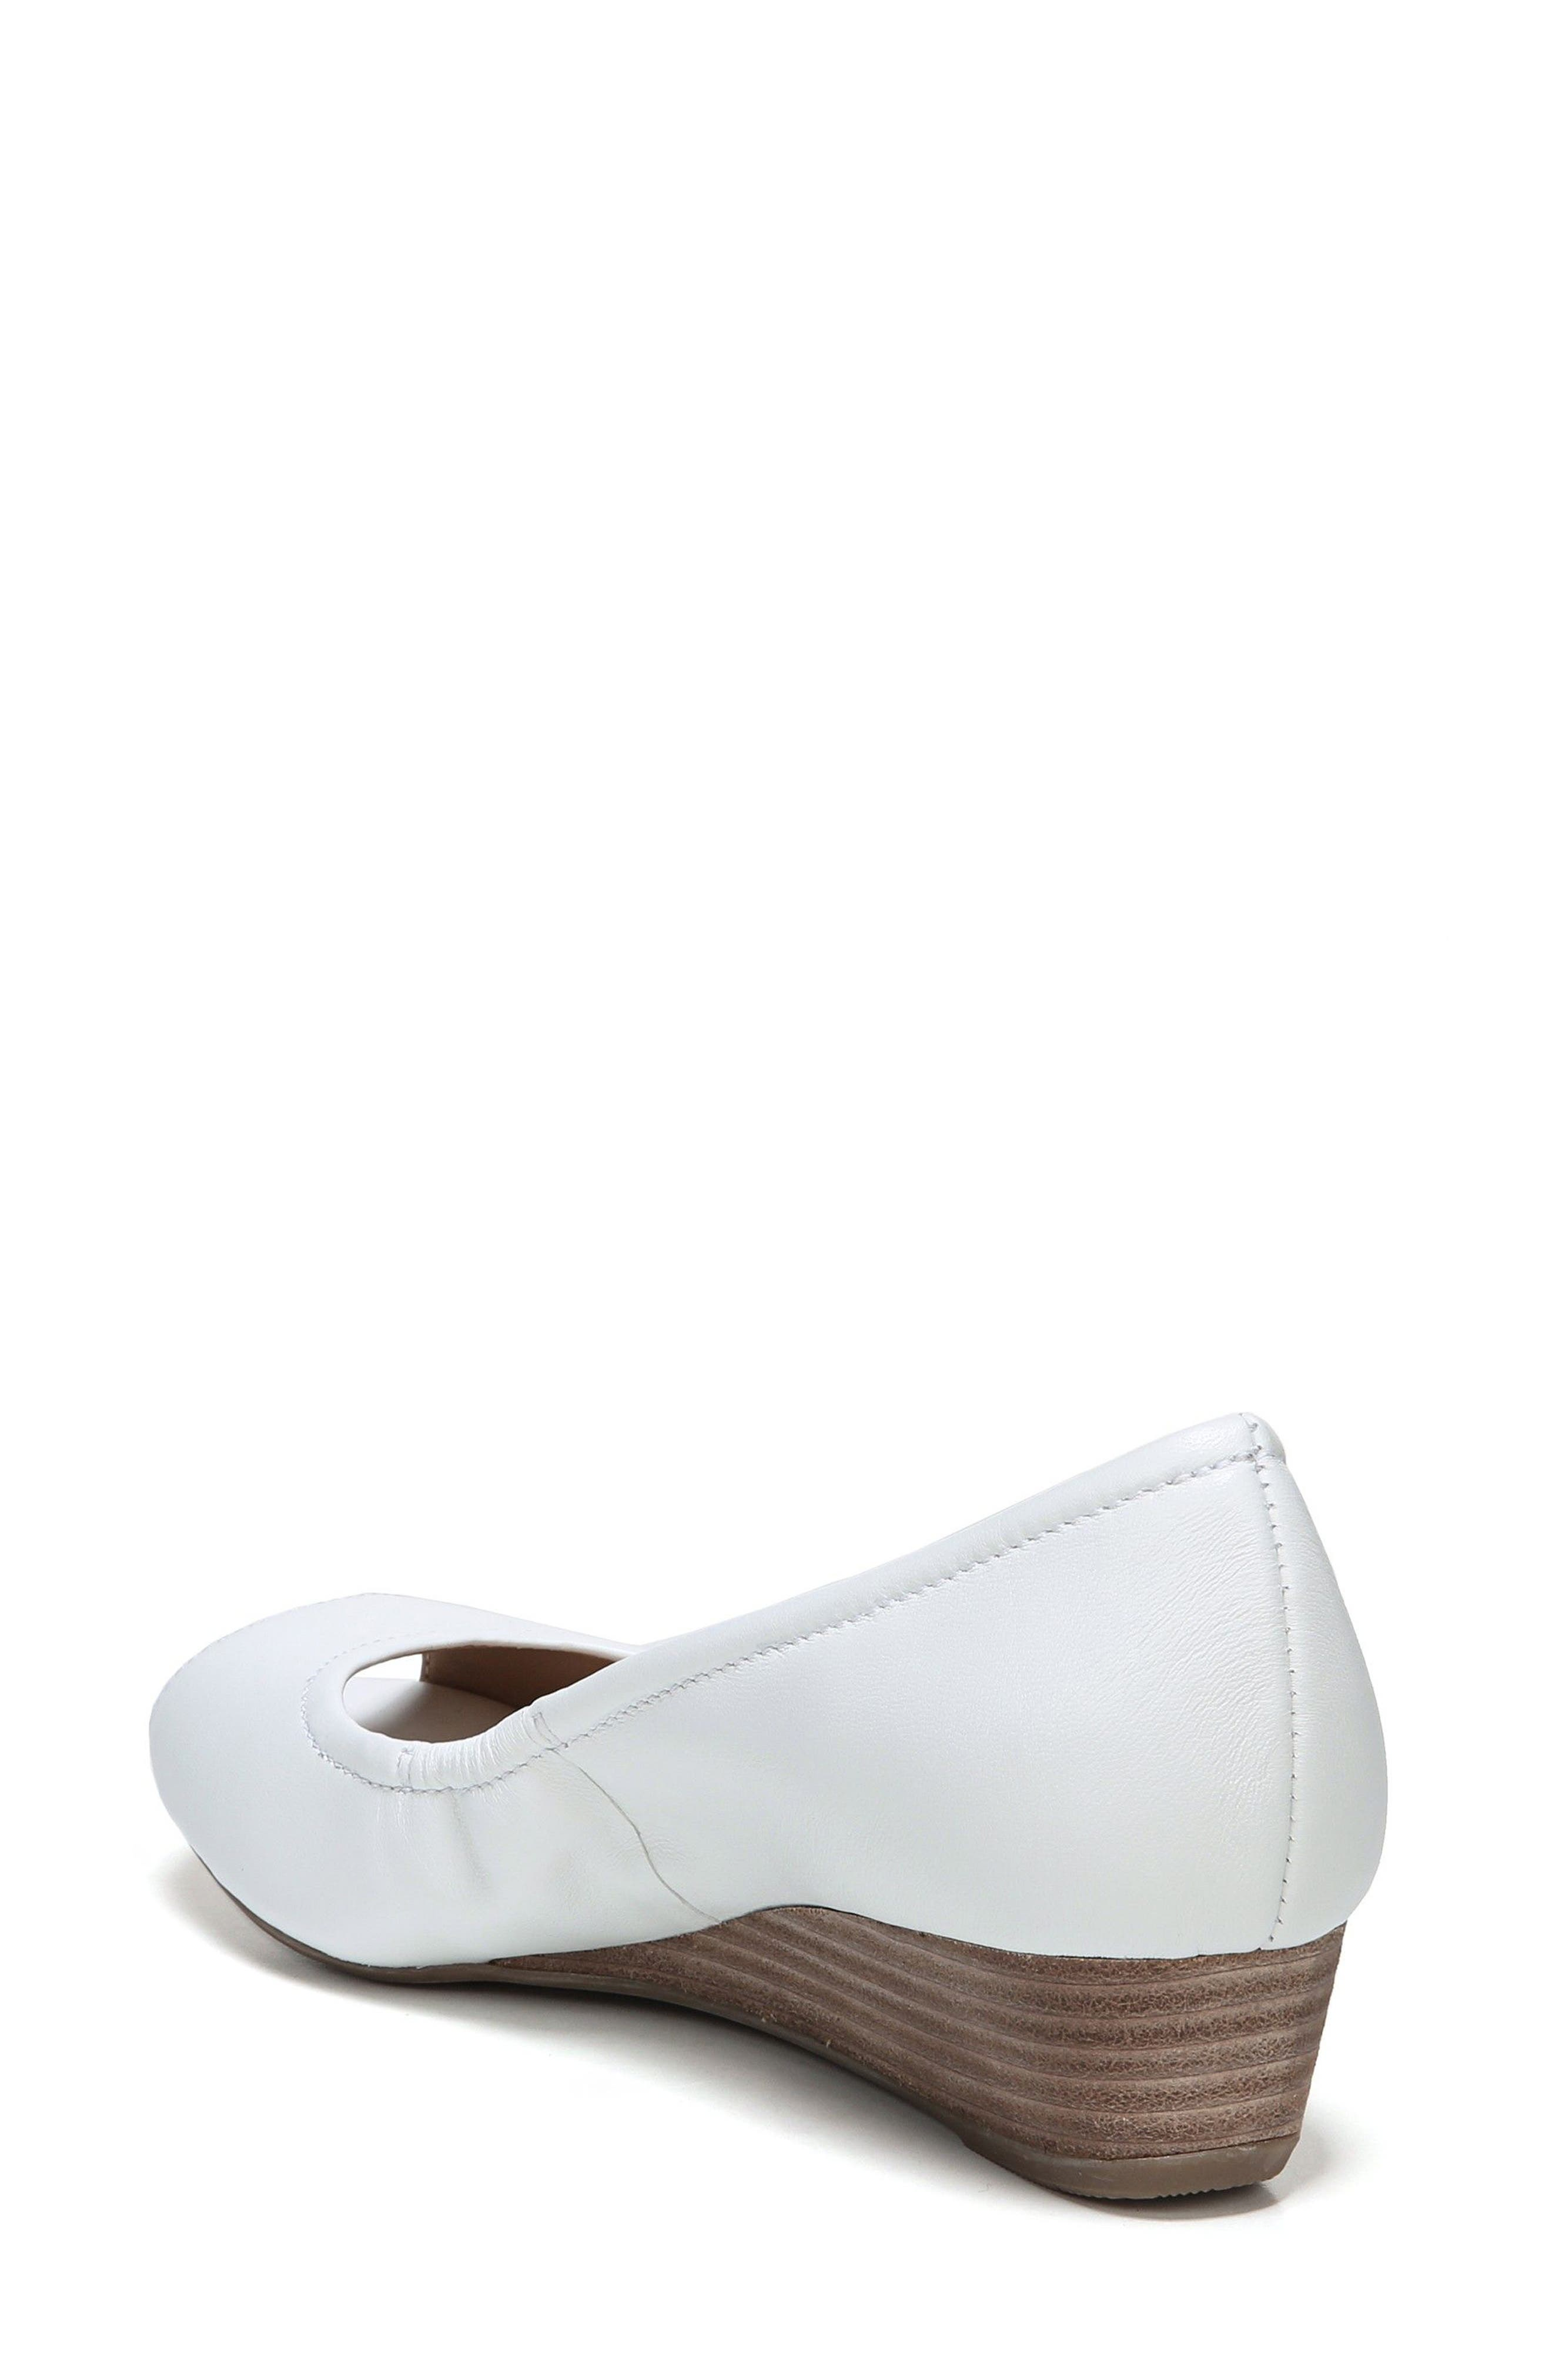 'Contrast' Peep Toe Wedge,                             Alternate thumbnail 6, color,